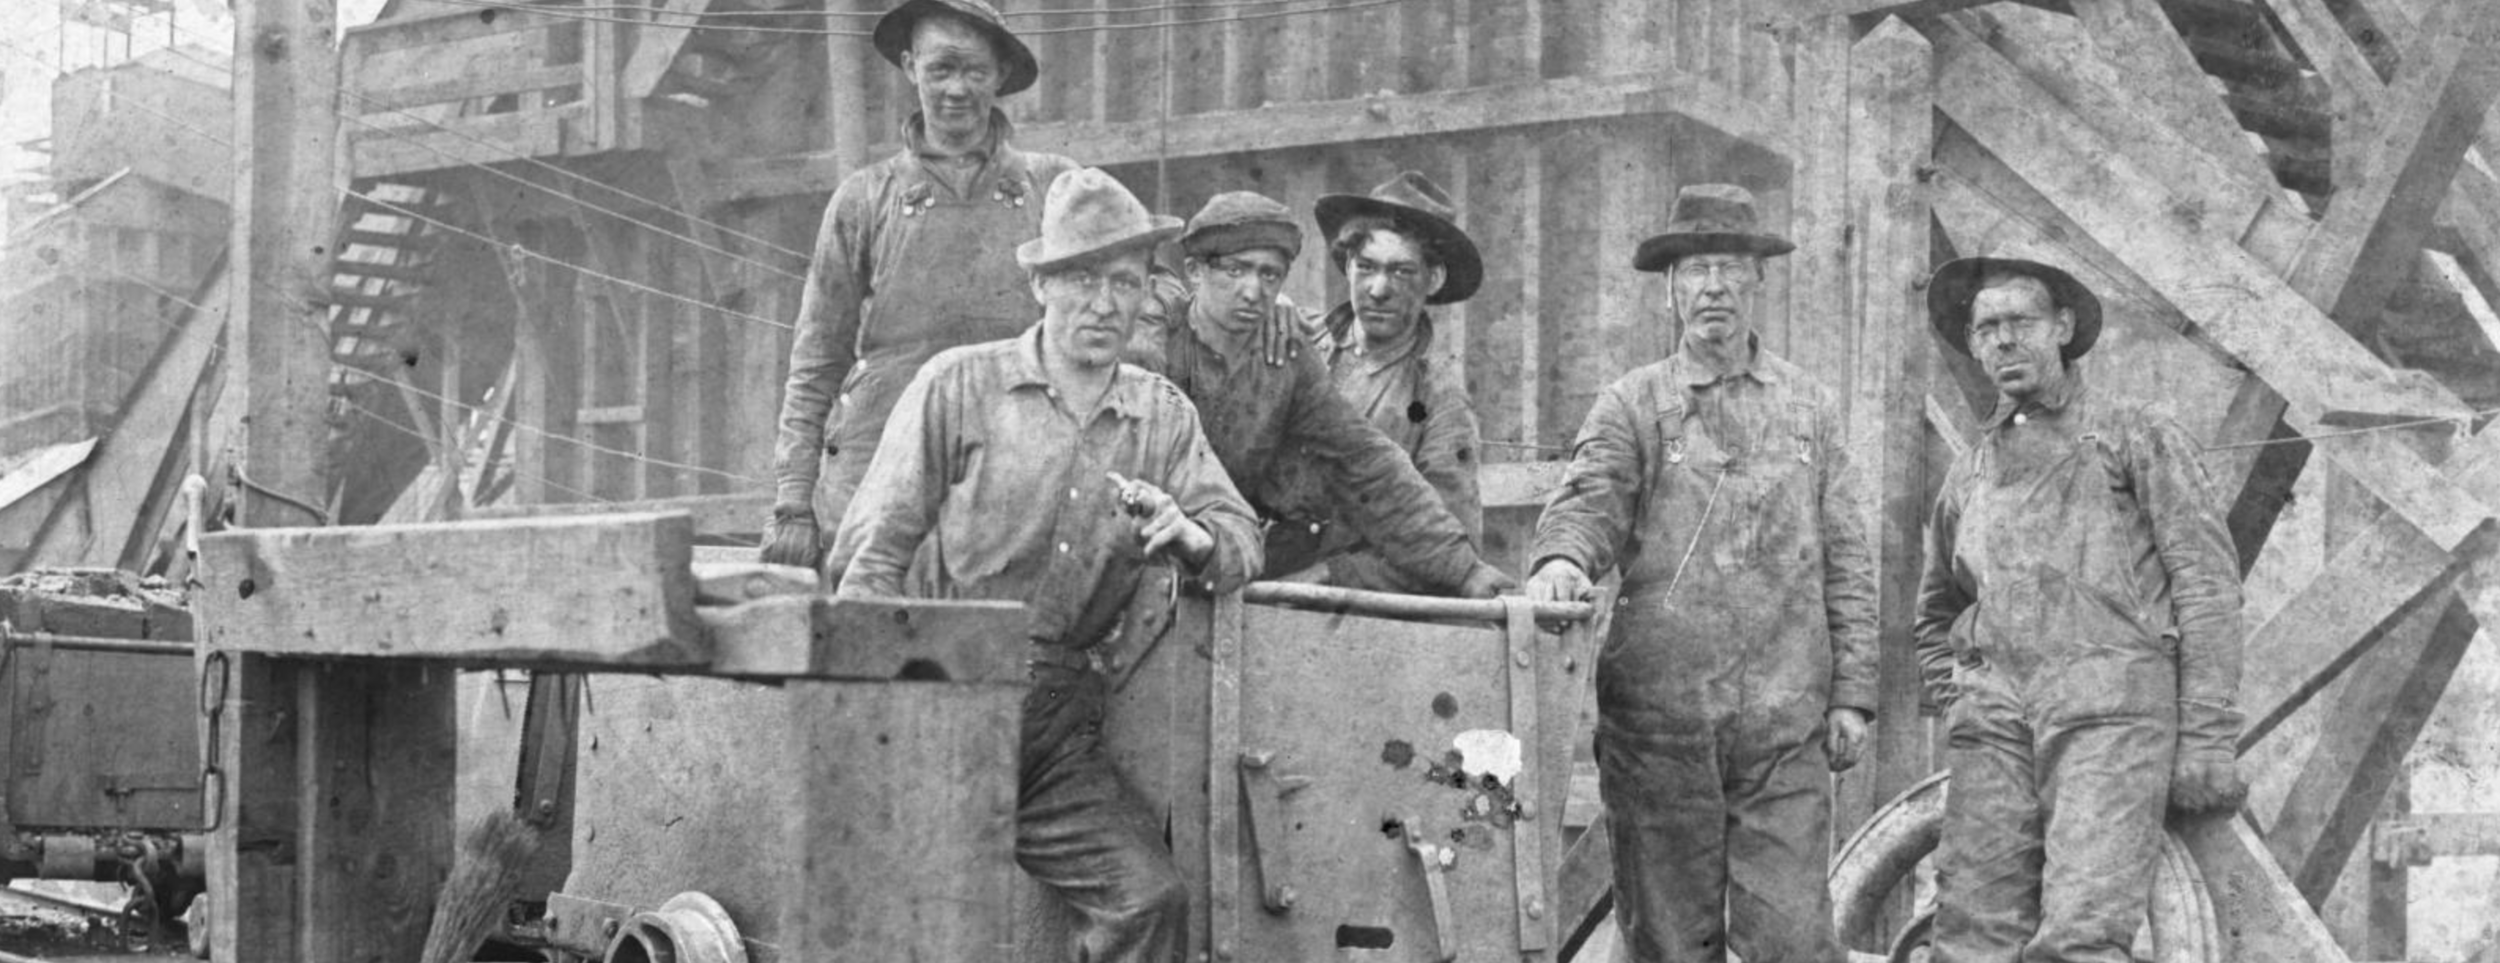 Coal miners at the Colorado Fuel and Iron Company mine. Image property of the Denver Public Library.